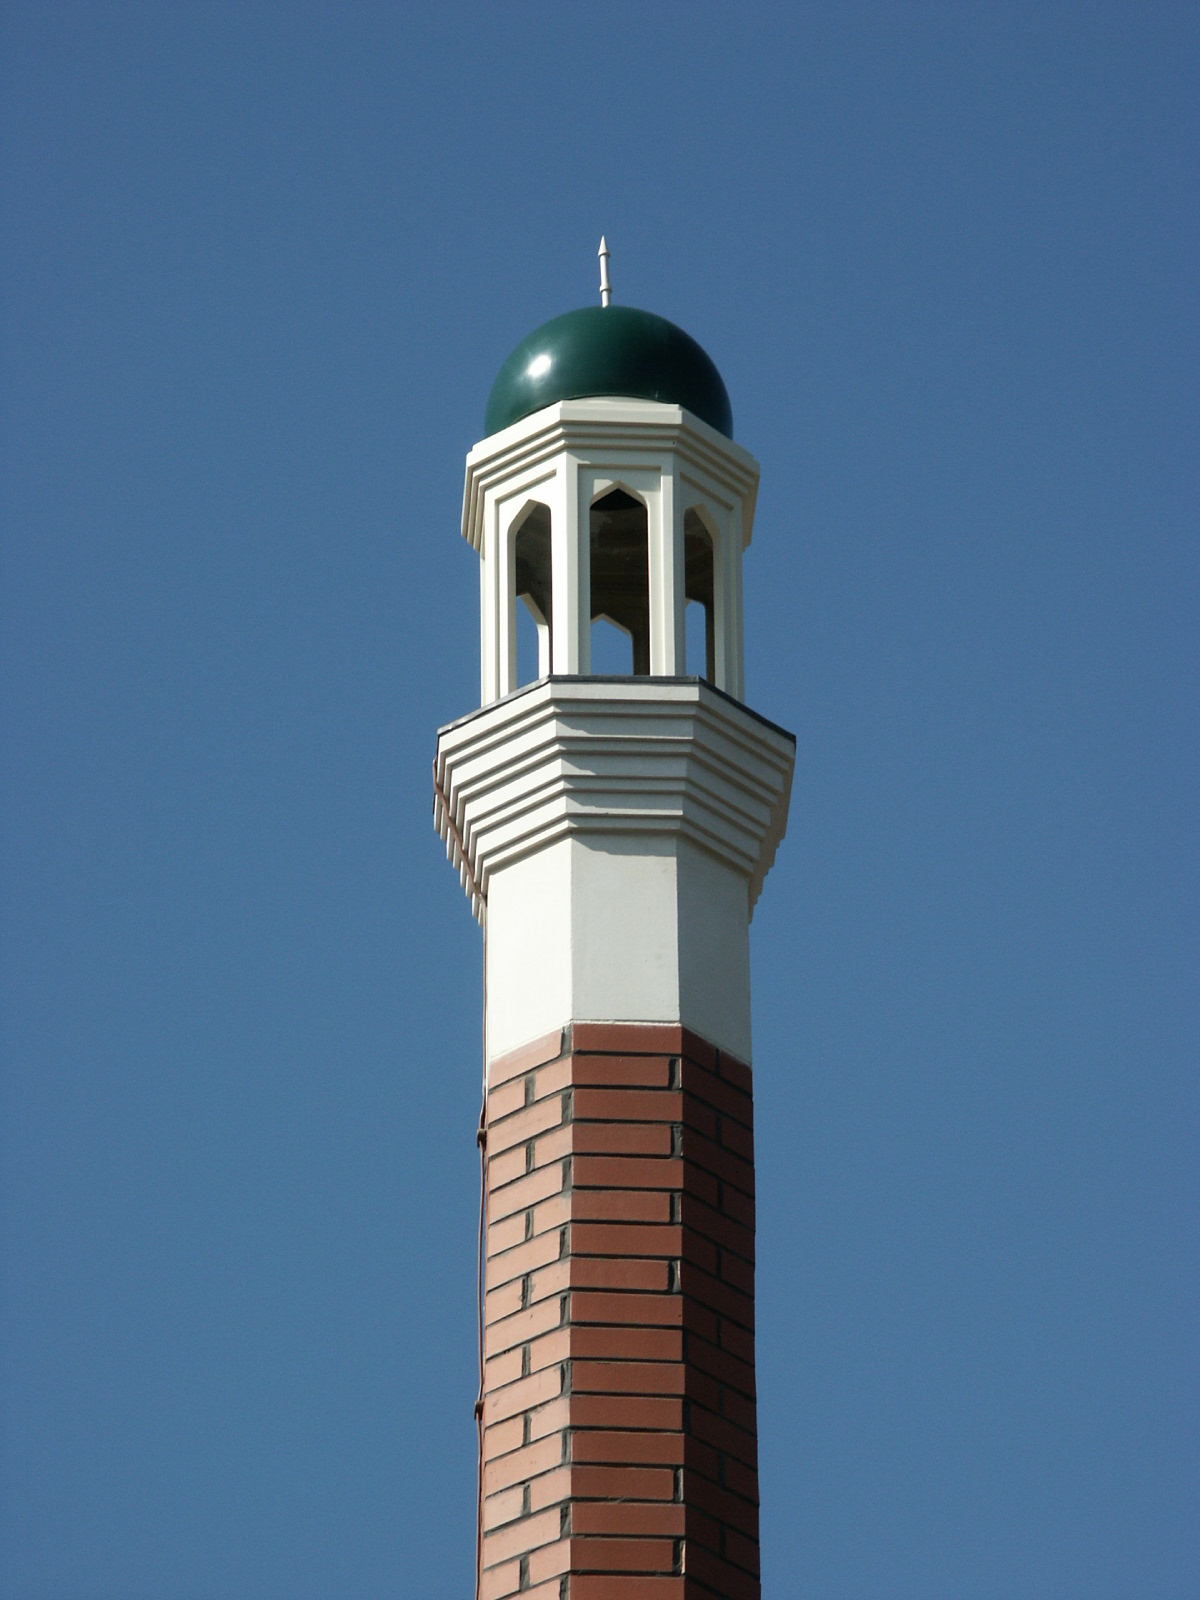 Mosque minaret with finial